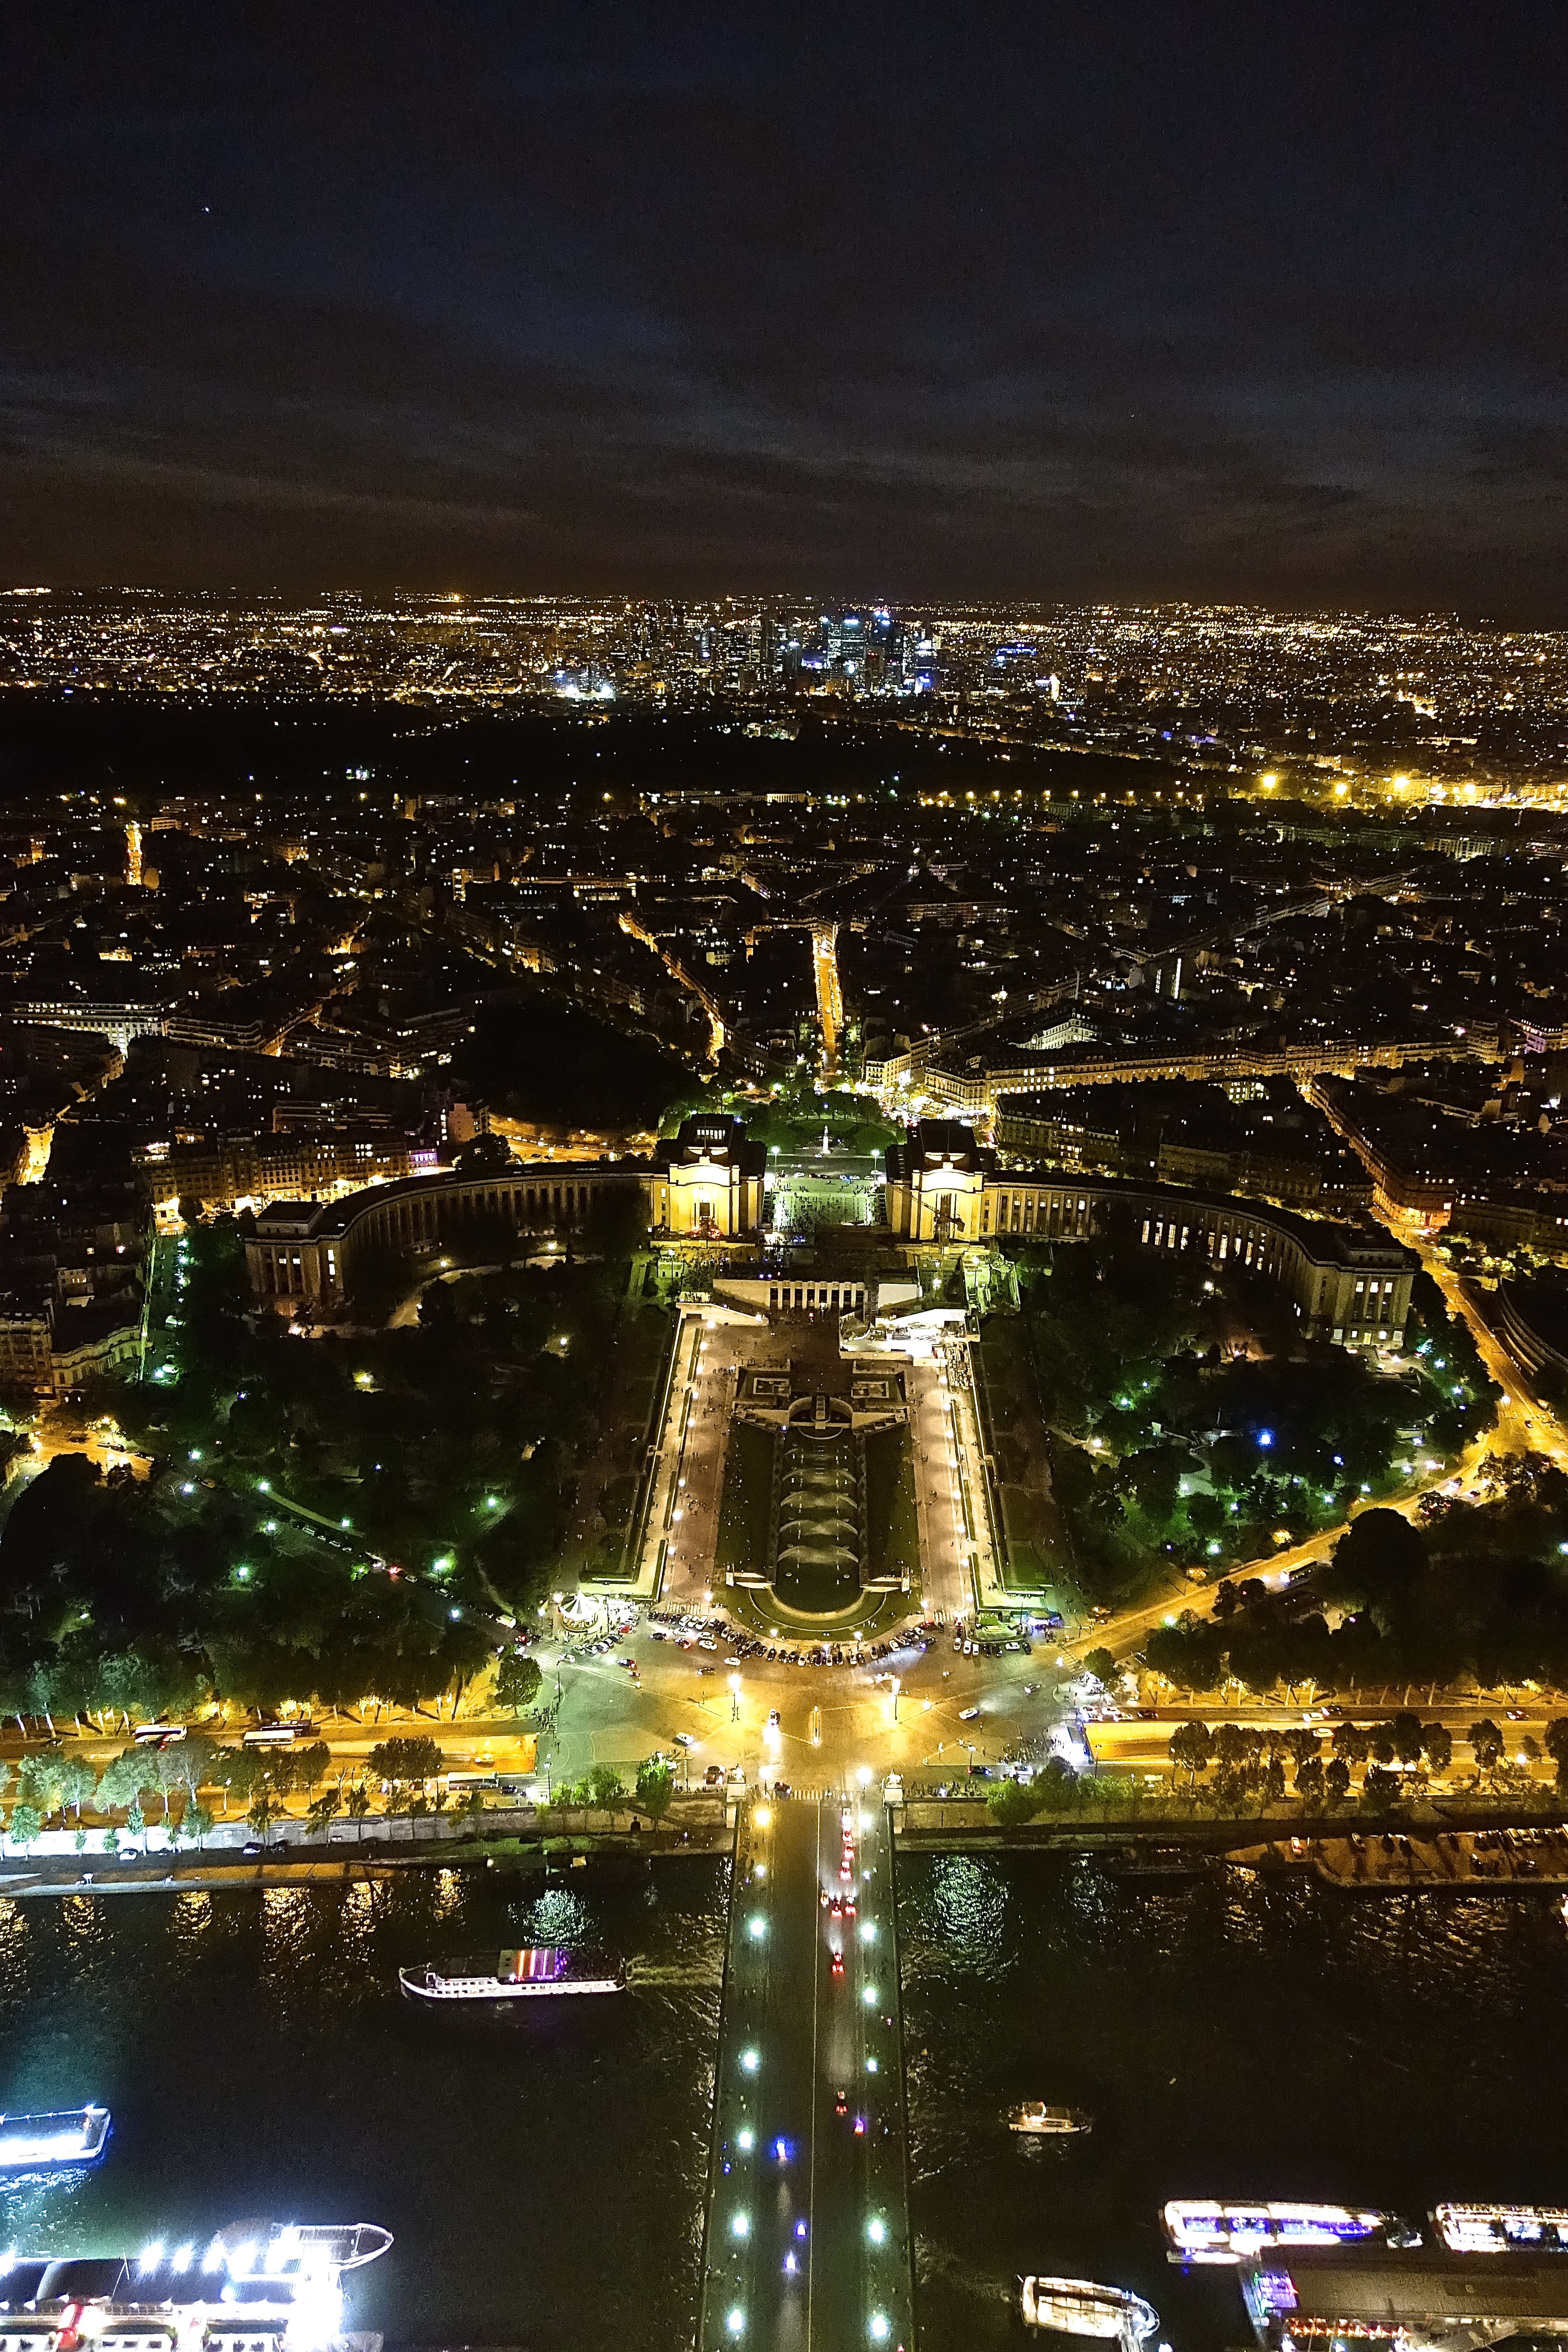 Paris by Night from Eiffel Tower